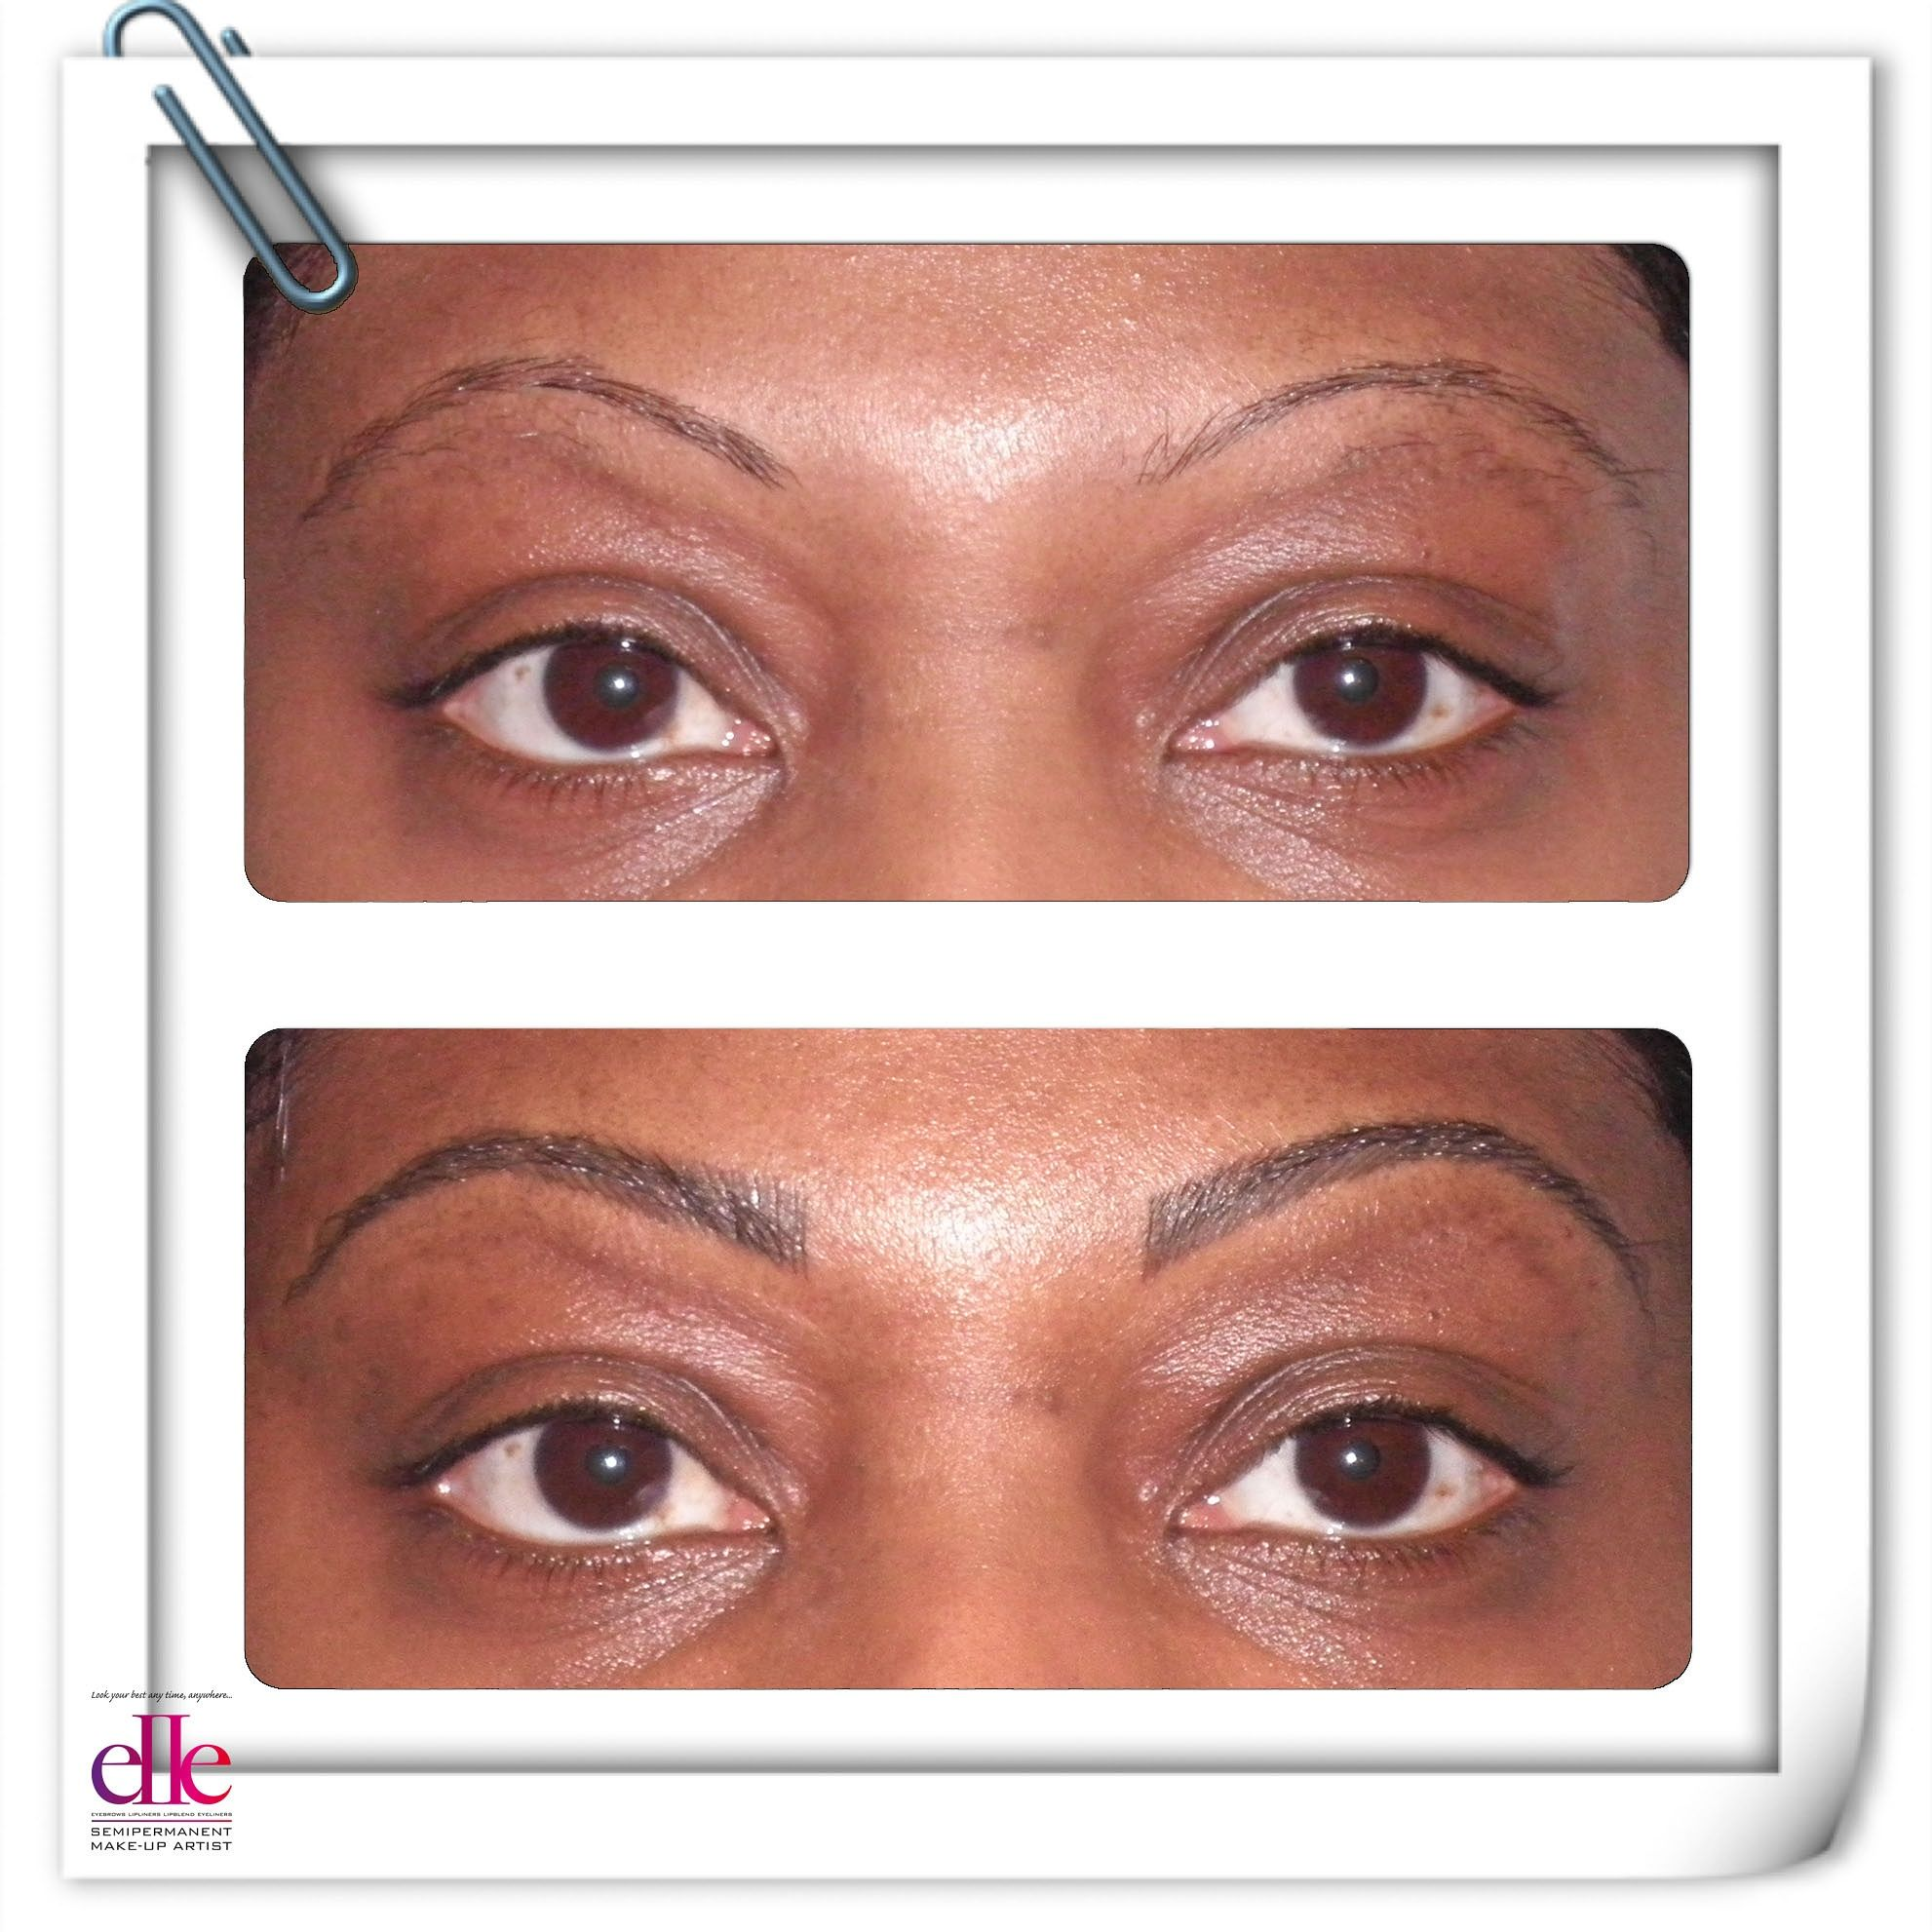 Before And After Semipermanent Makeup Procedure With Treacle Pigment